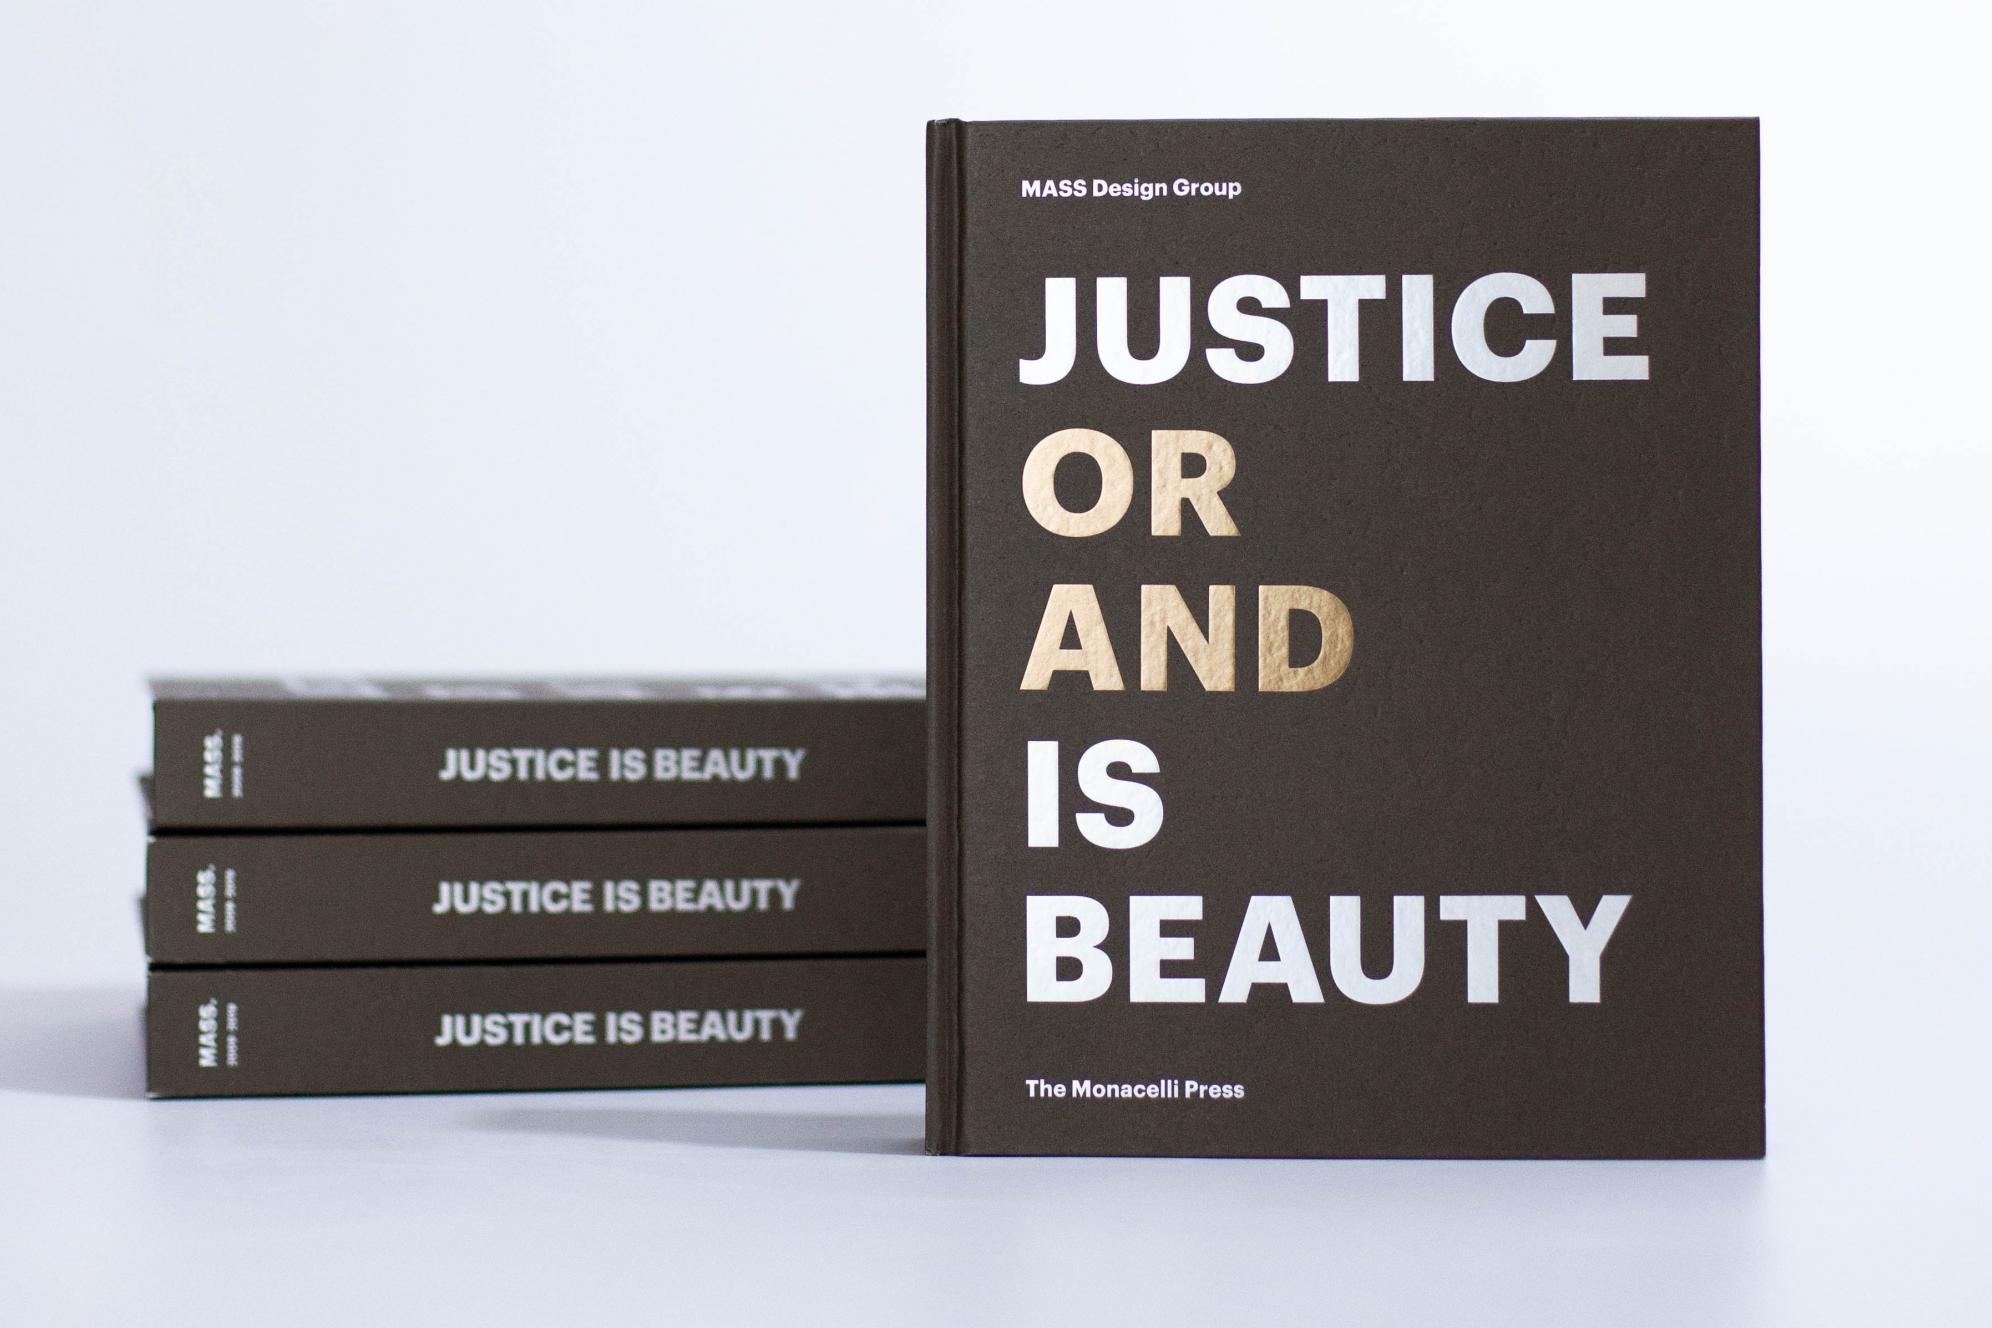 Justice is Beauty books stacked